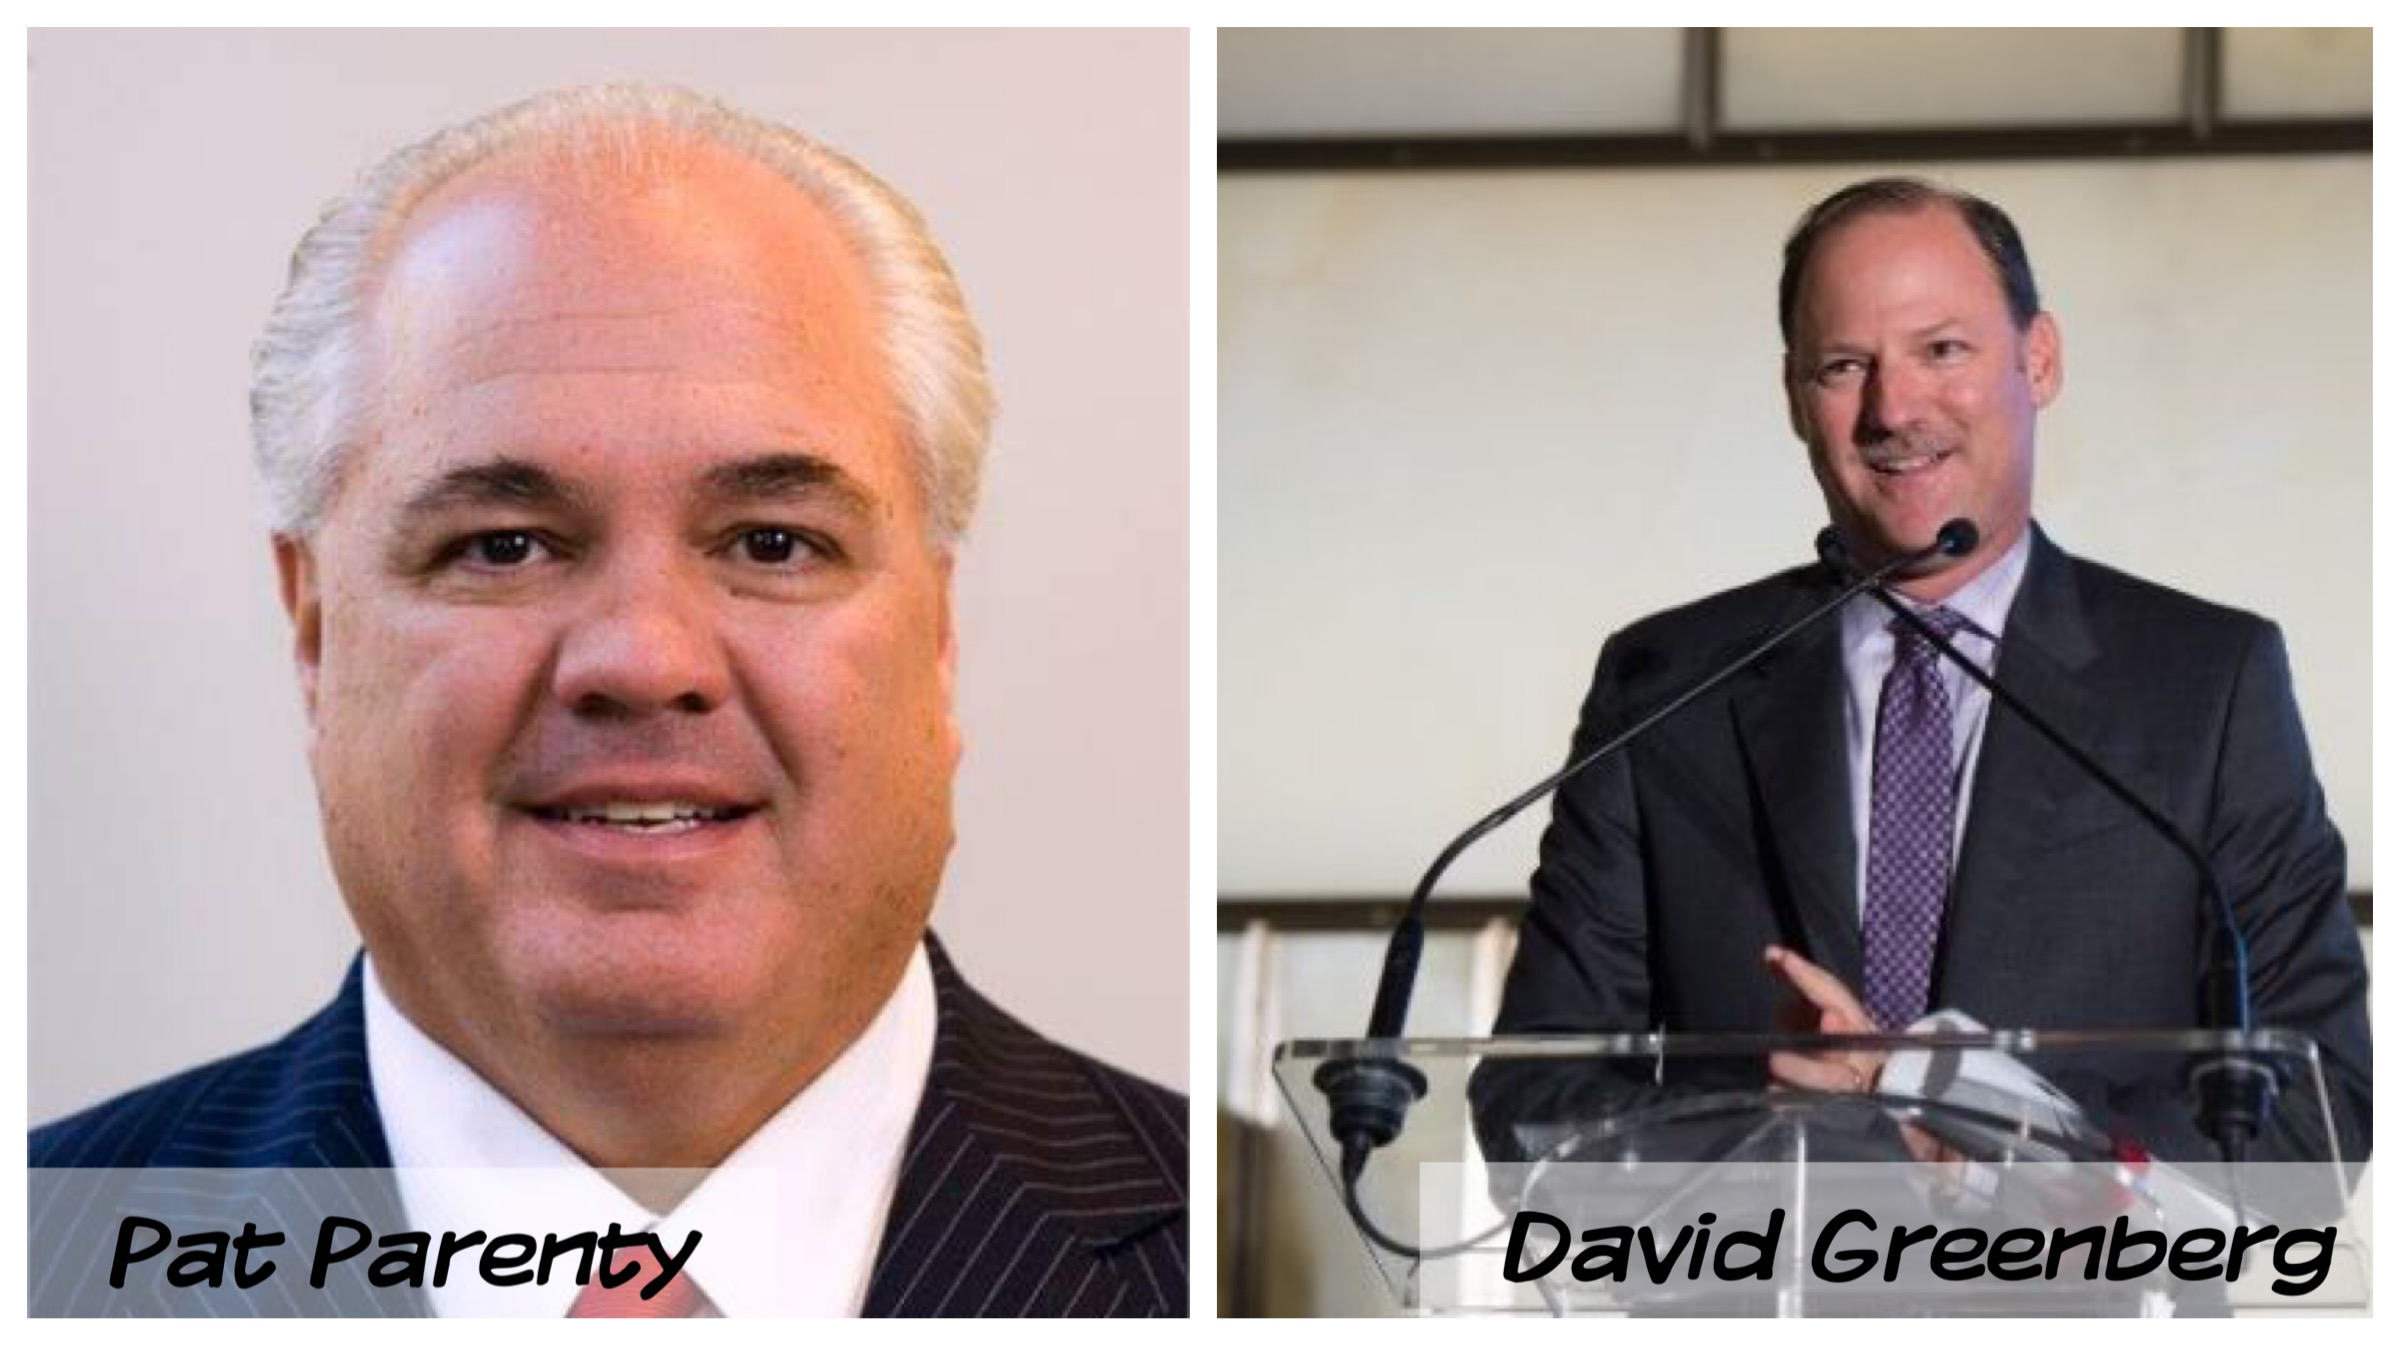 Pat Parenty will retire from his role as President of the Professional Products Division U.S., and David Greenberg has been appointed to Group President of Professional Products Division North America. Photo for Greenberg via Linked In